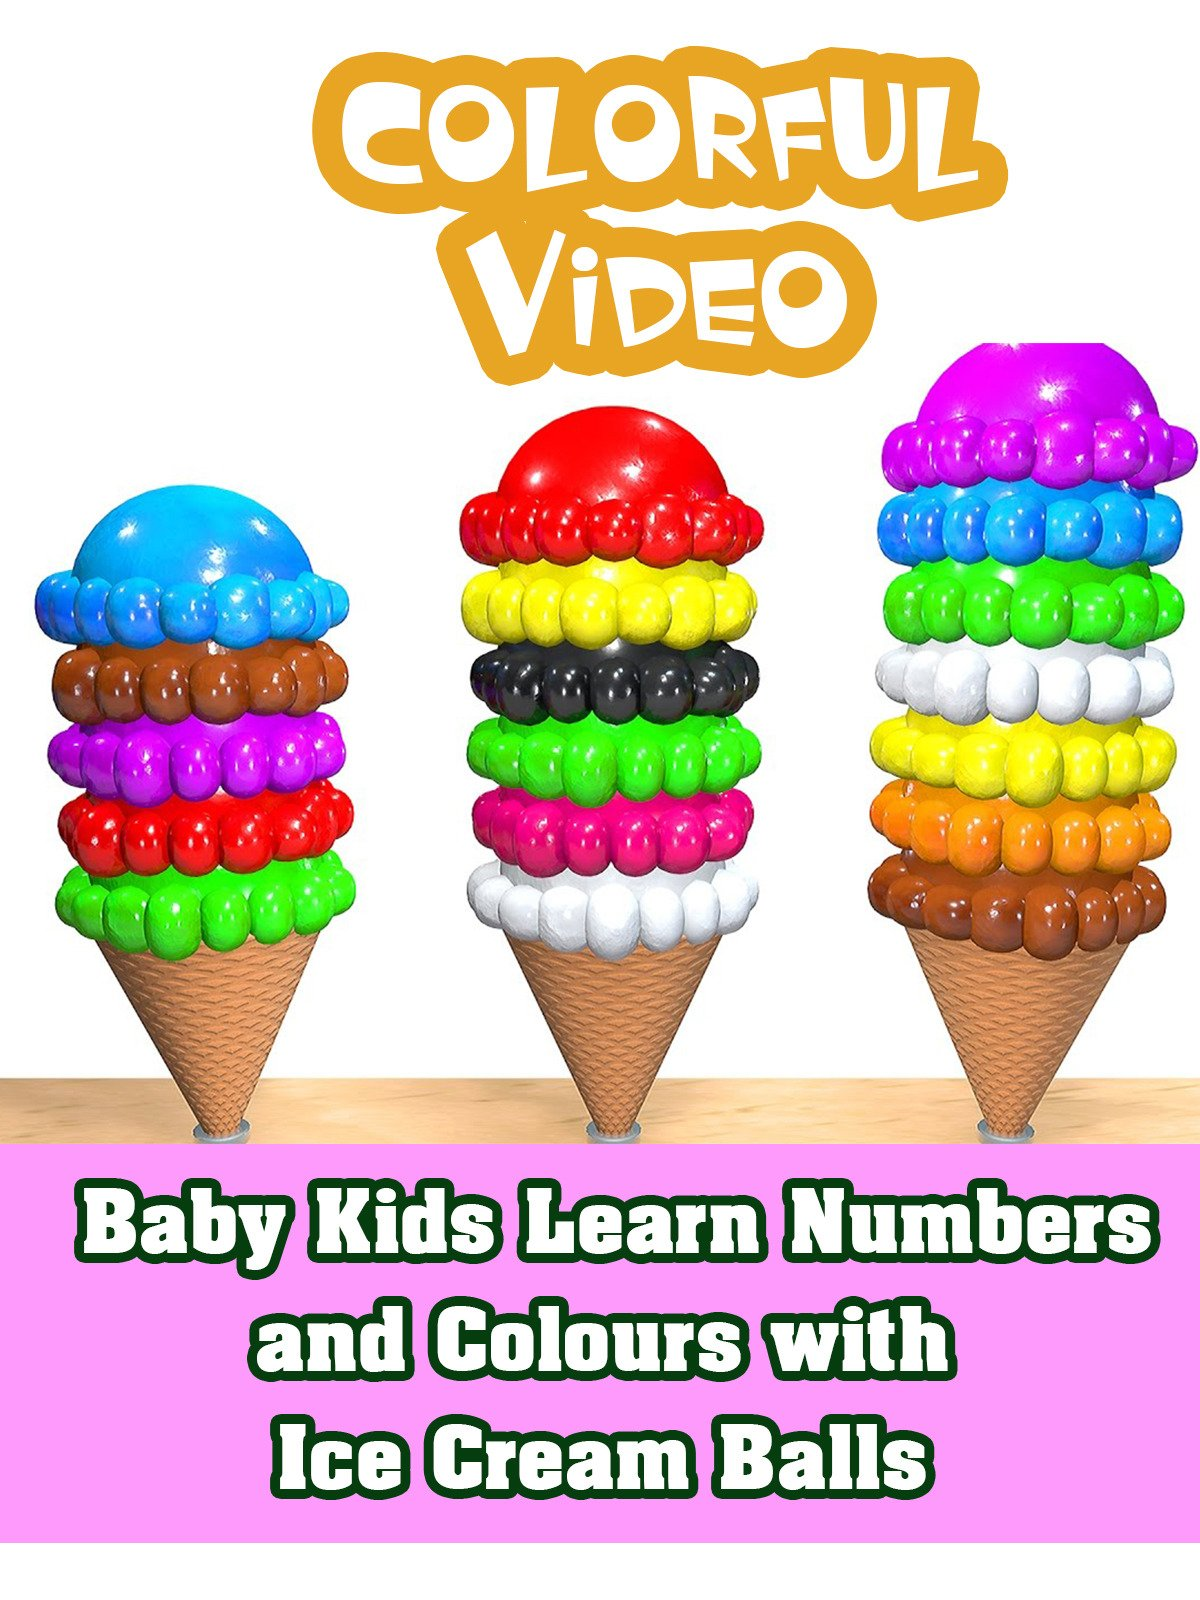 Baby Kids Learn Numbers and Colours with Ice Cream Balls